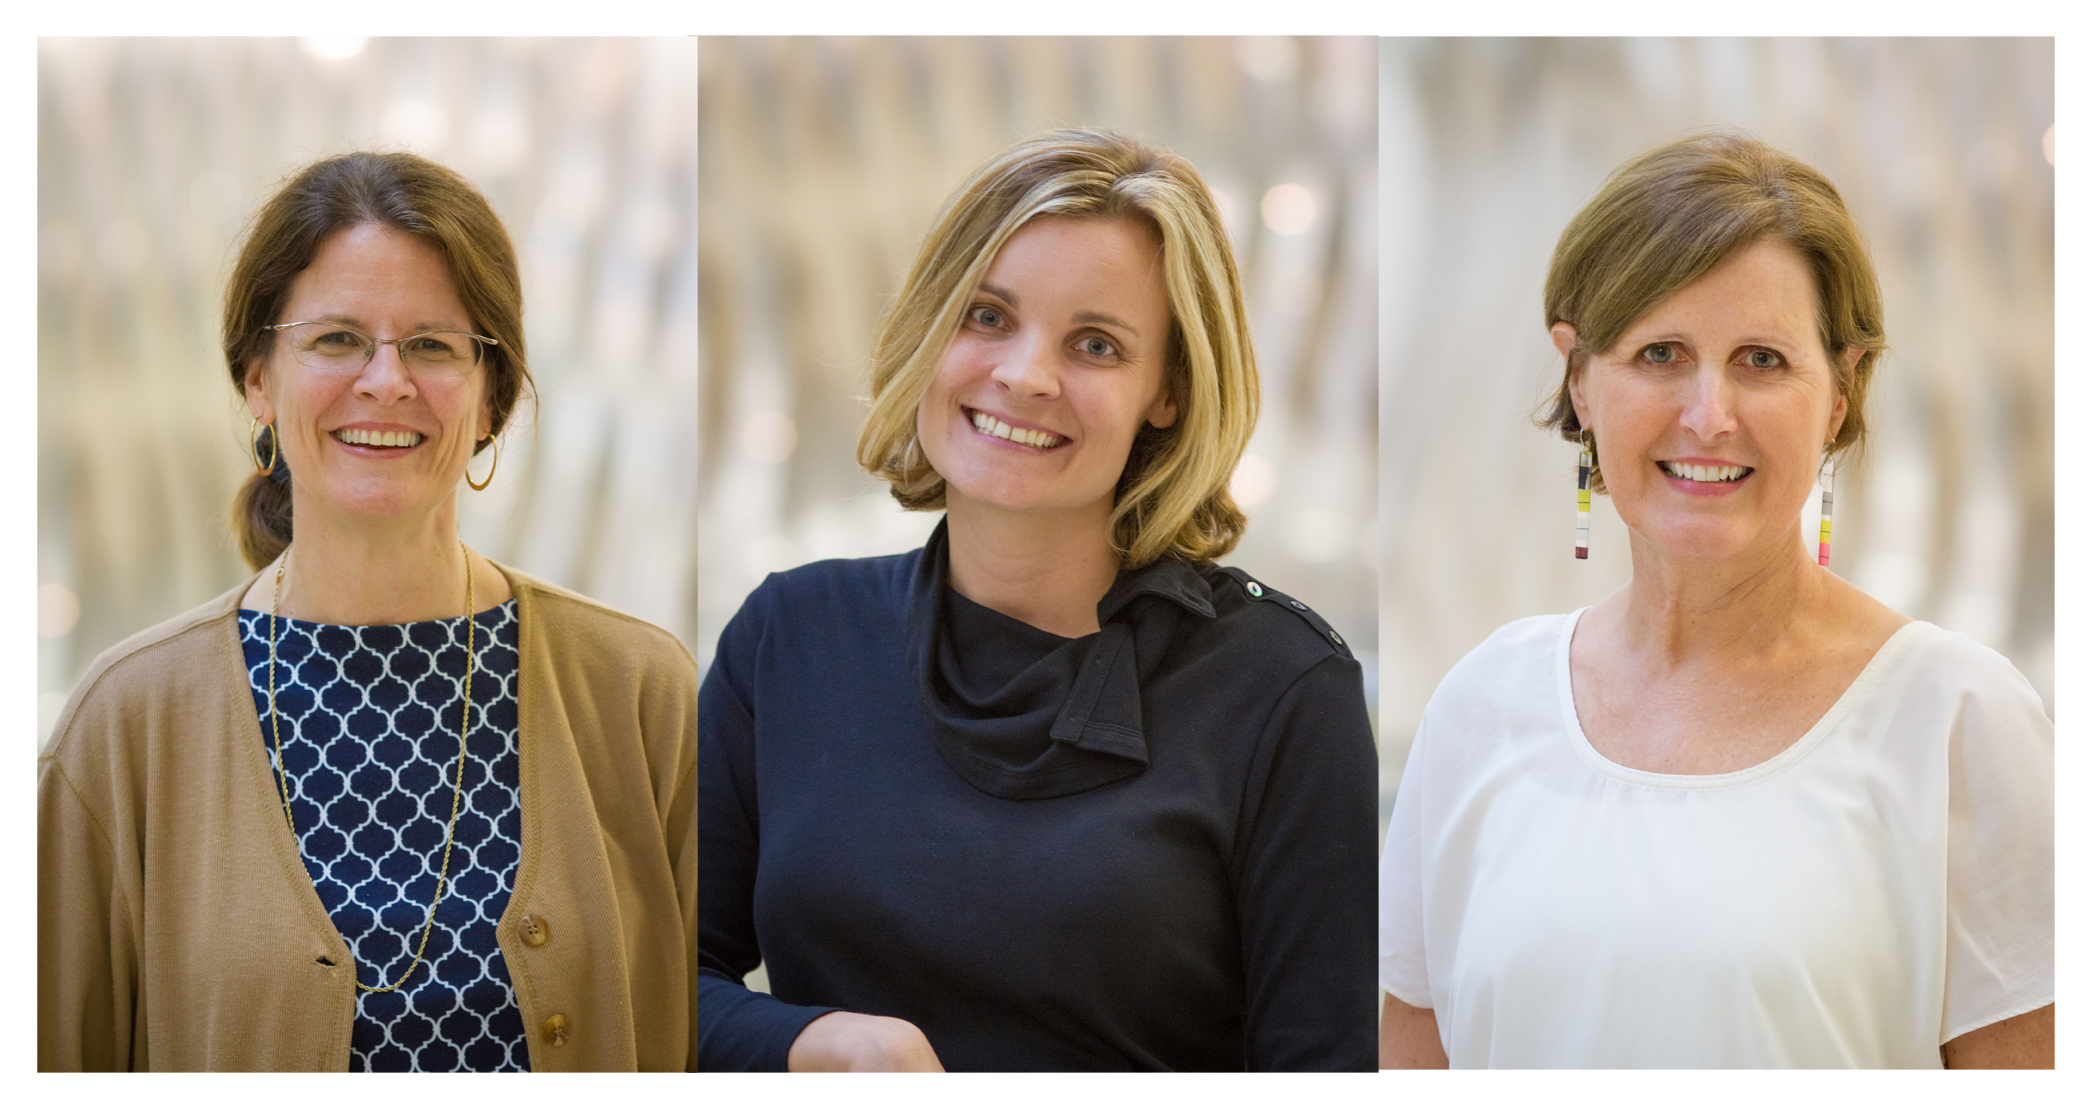 From left to right: Jill Pable, Amy Huber, Lisa Waxman